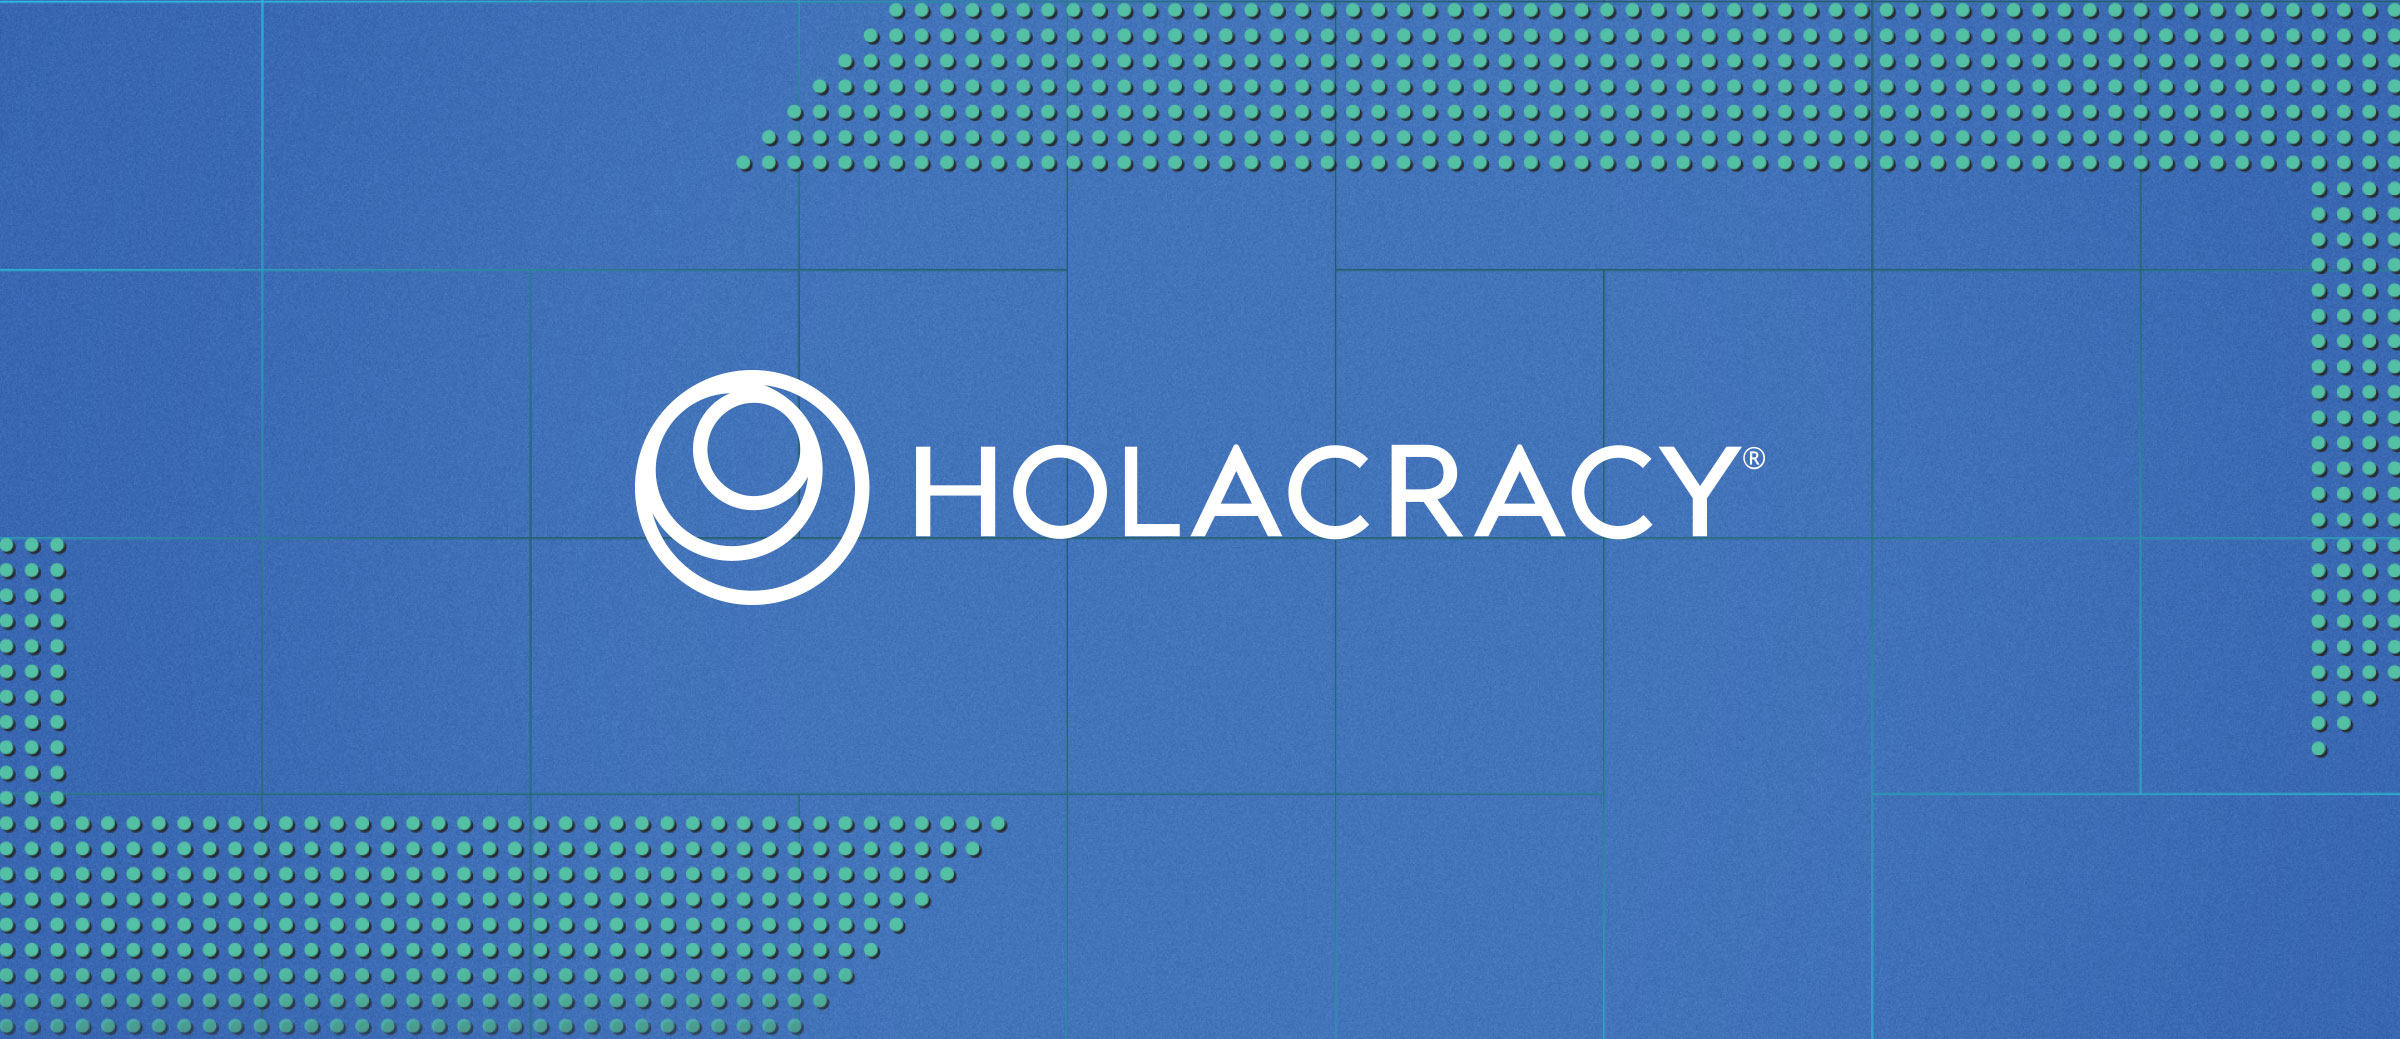 holacracy-training-banner